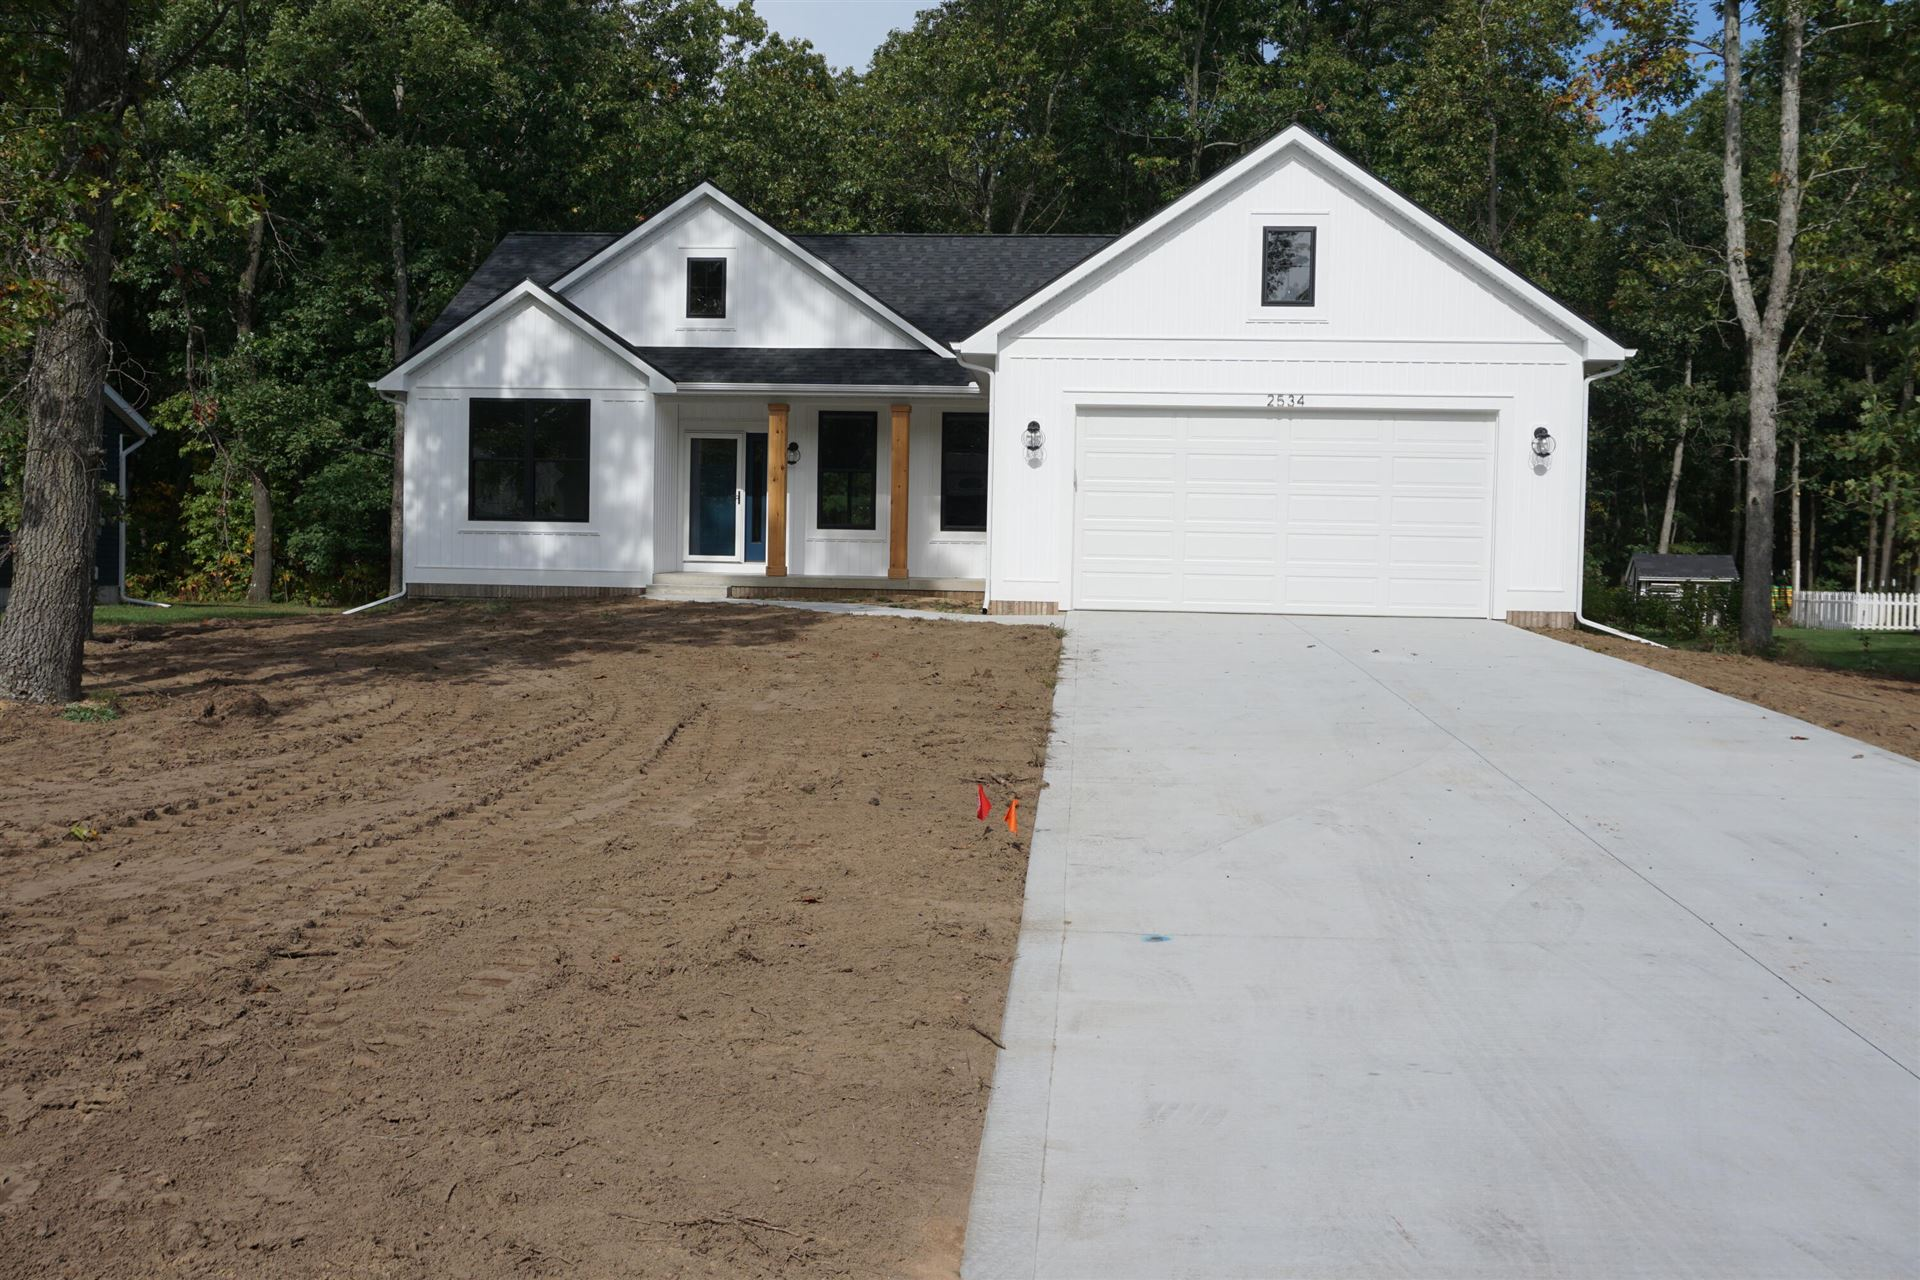 2534 Hickorynut Trail, Muskegon, MI 49442 - MLS#: 21016096